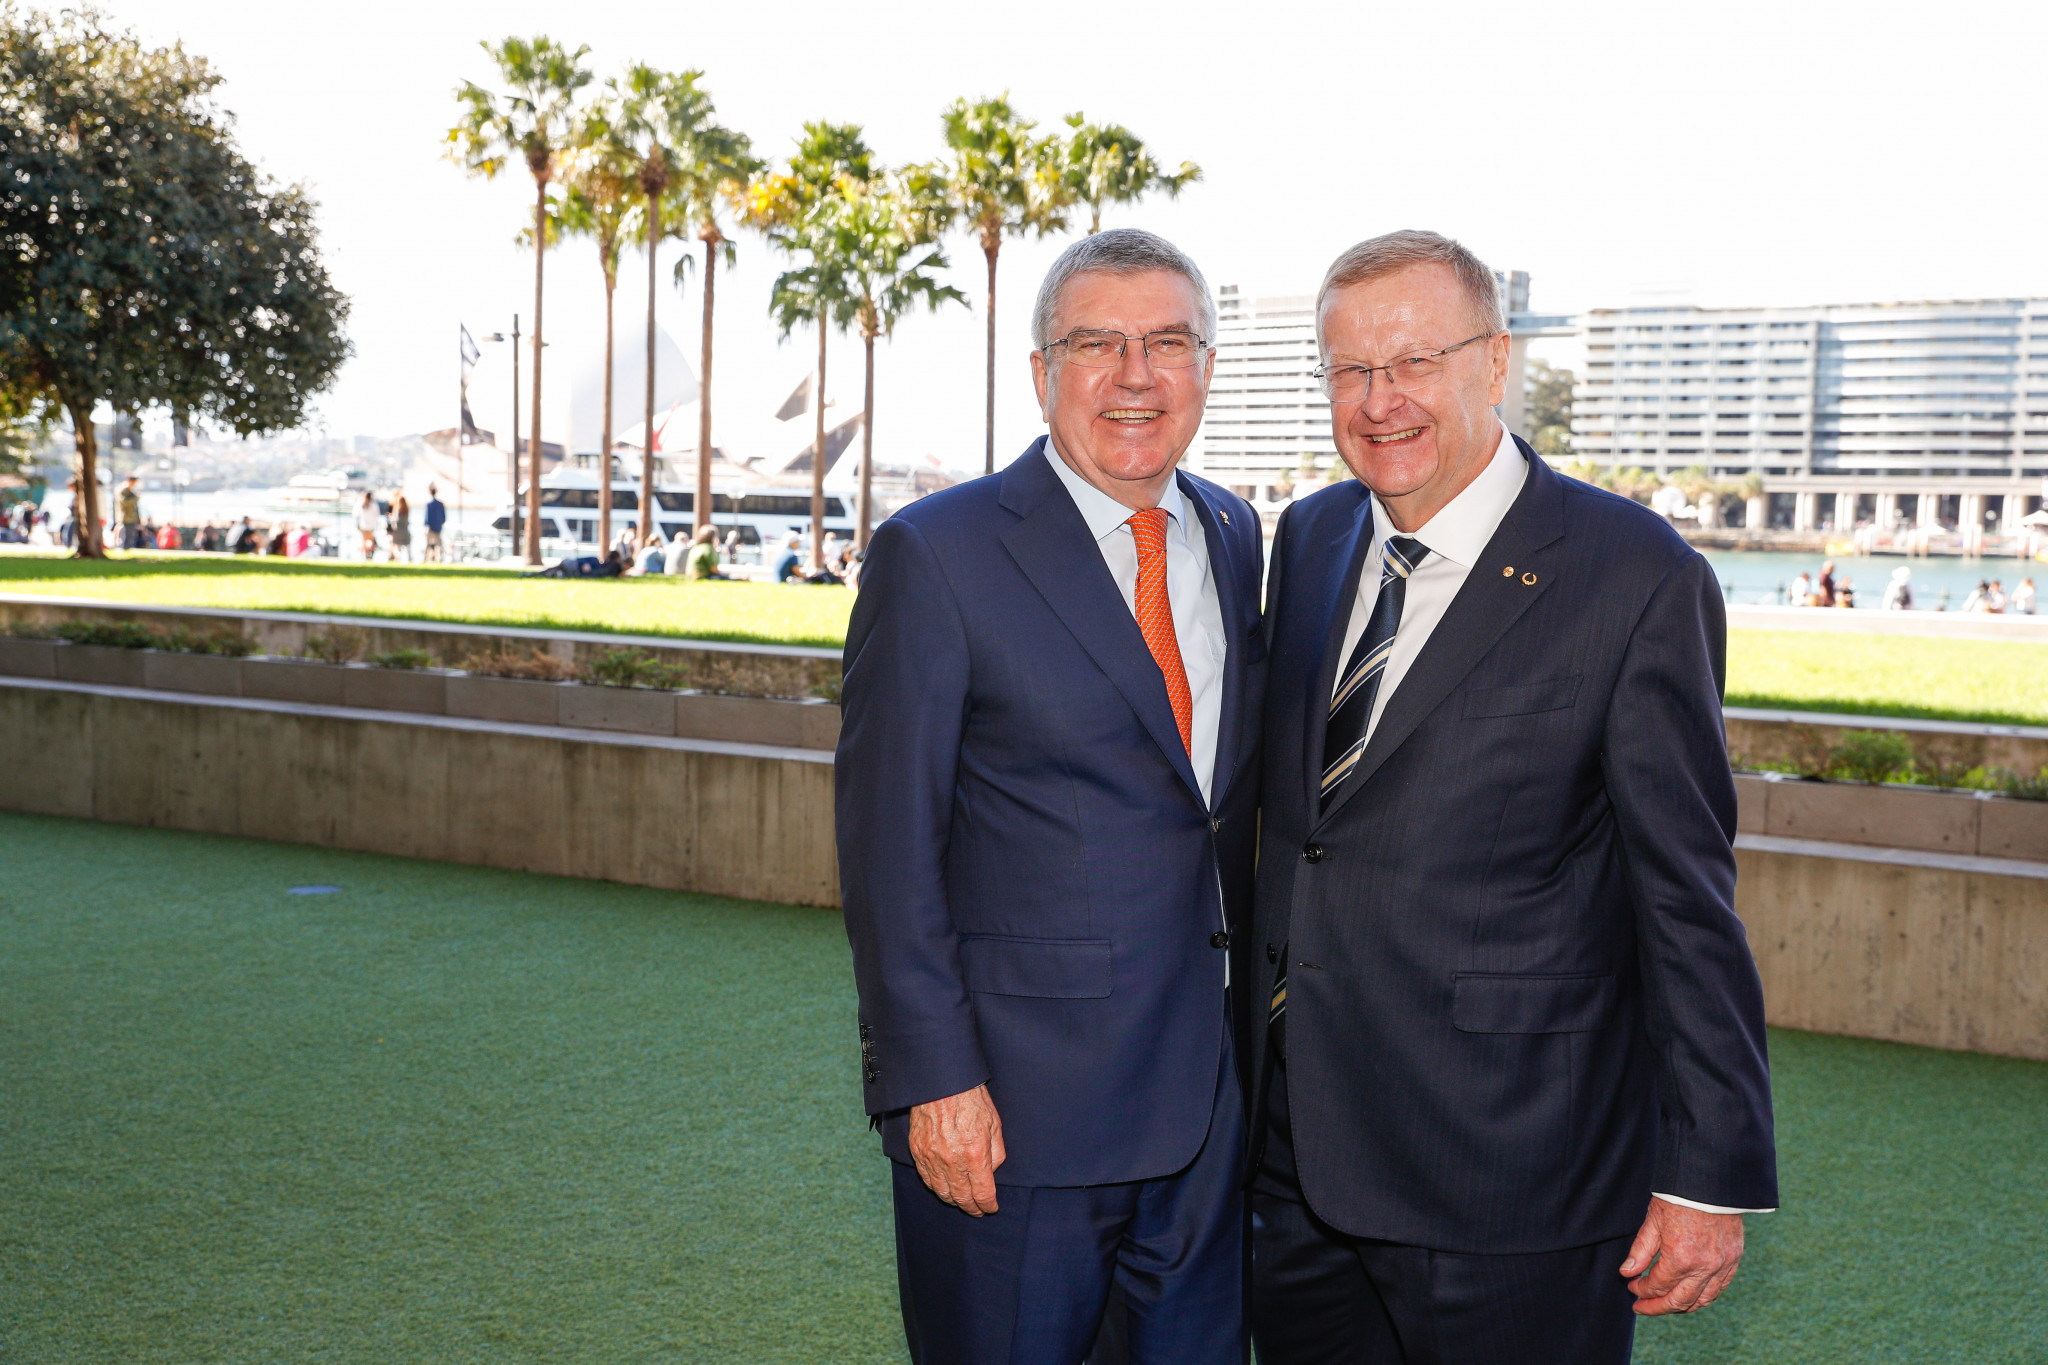 Australian Olympic Committee President John Coates, right, hopes to present Queensland's bid for the 2032 Olympic and Paralympic Games to IOC counterpart Thomas Bach during Lausanne 2020 ©Getty Images